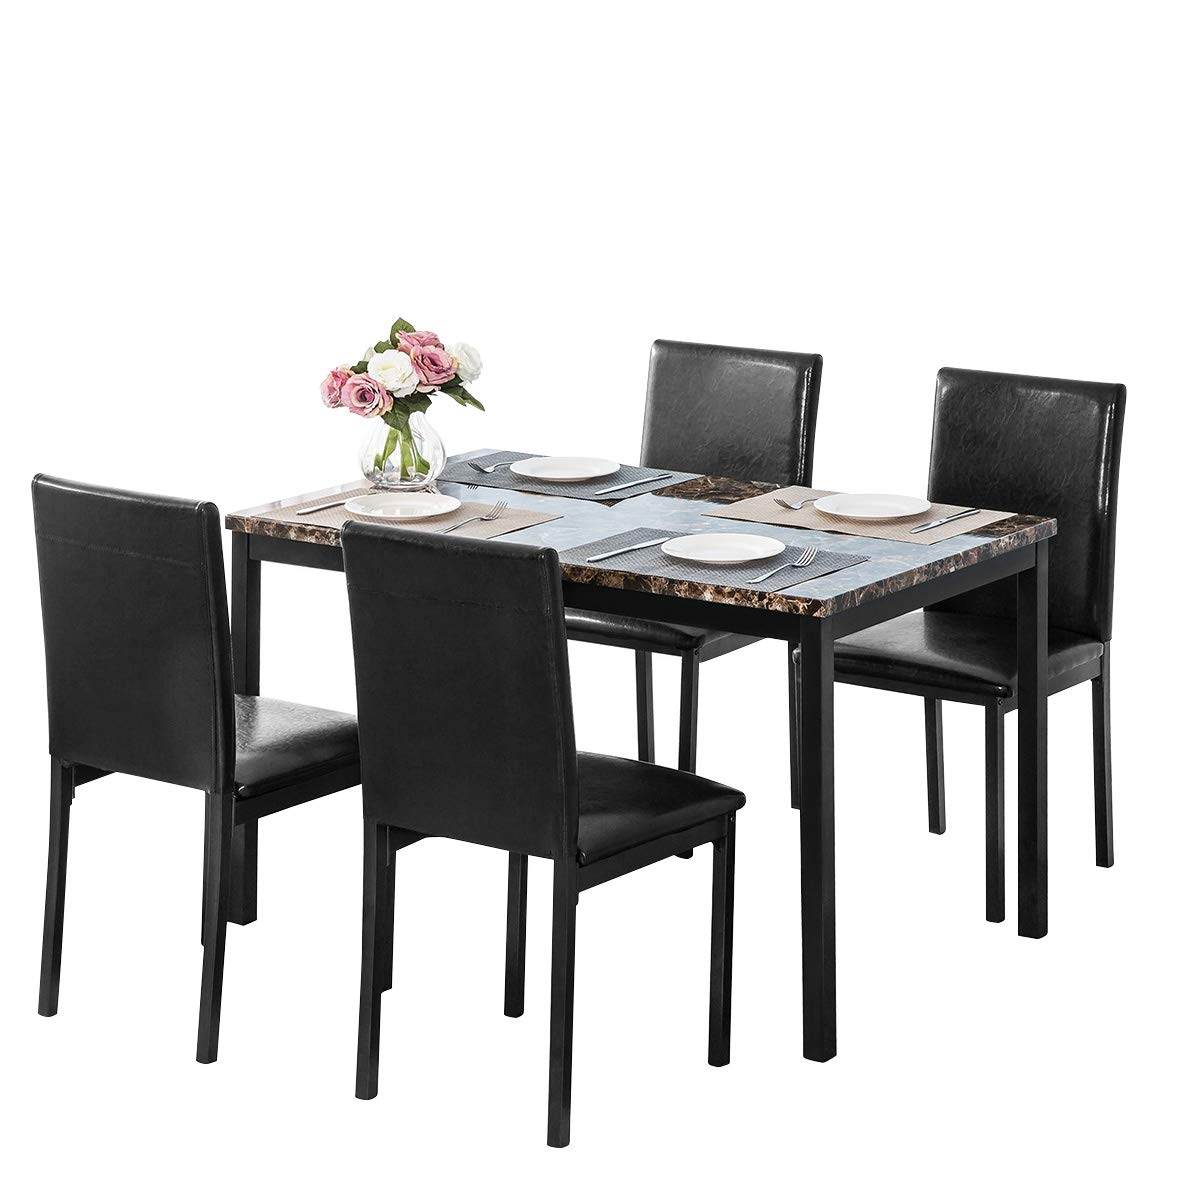 LTTROMAT Dining Table Set for 4, Elegant Faux Marble Desk and 4 Upholstered PU Leather Chairs, Perfect for Living Room